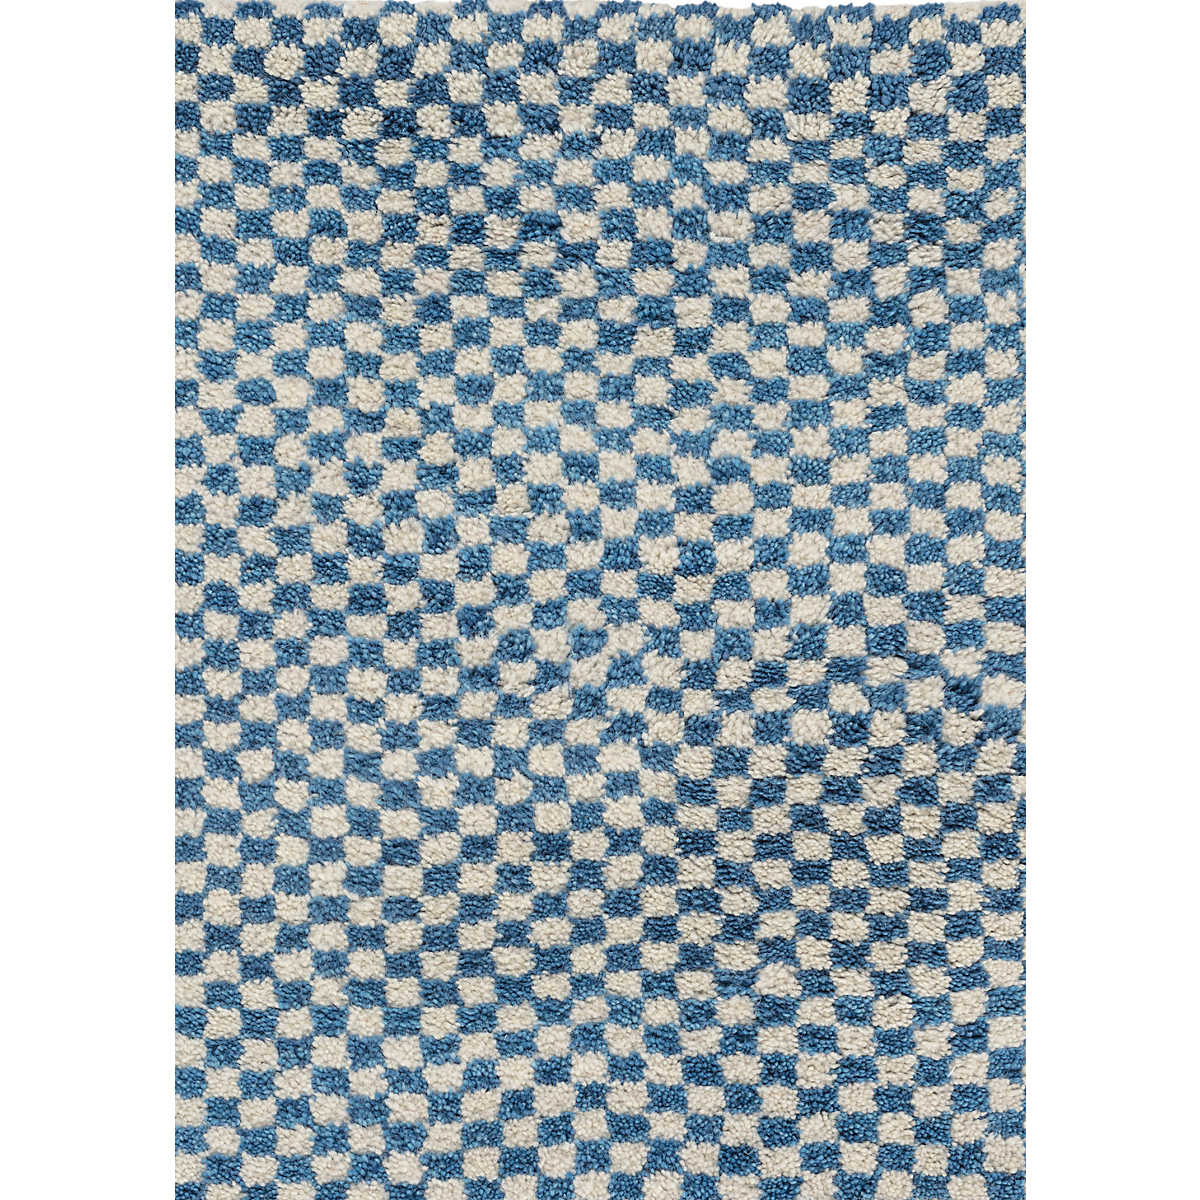 Citra Denim Hand Knotted Wool Rug | The Outlet